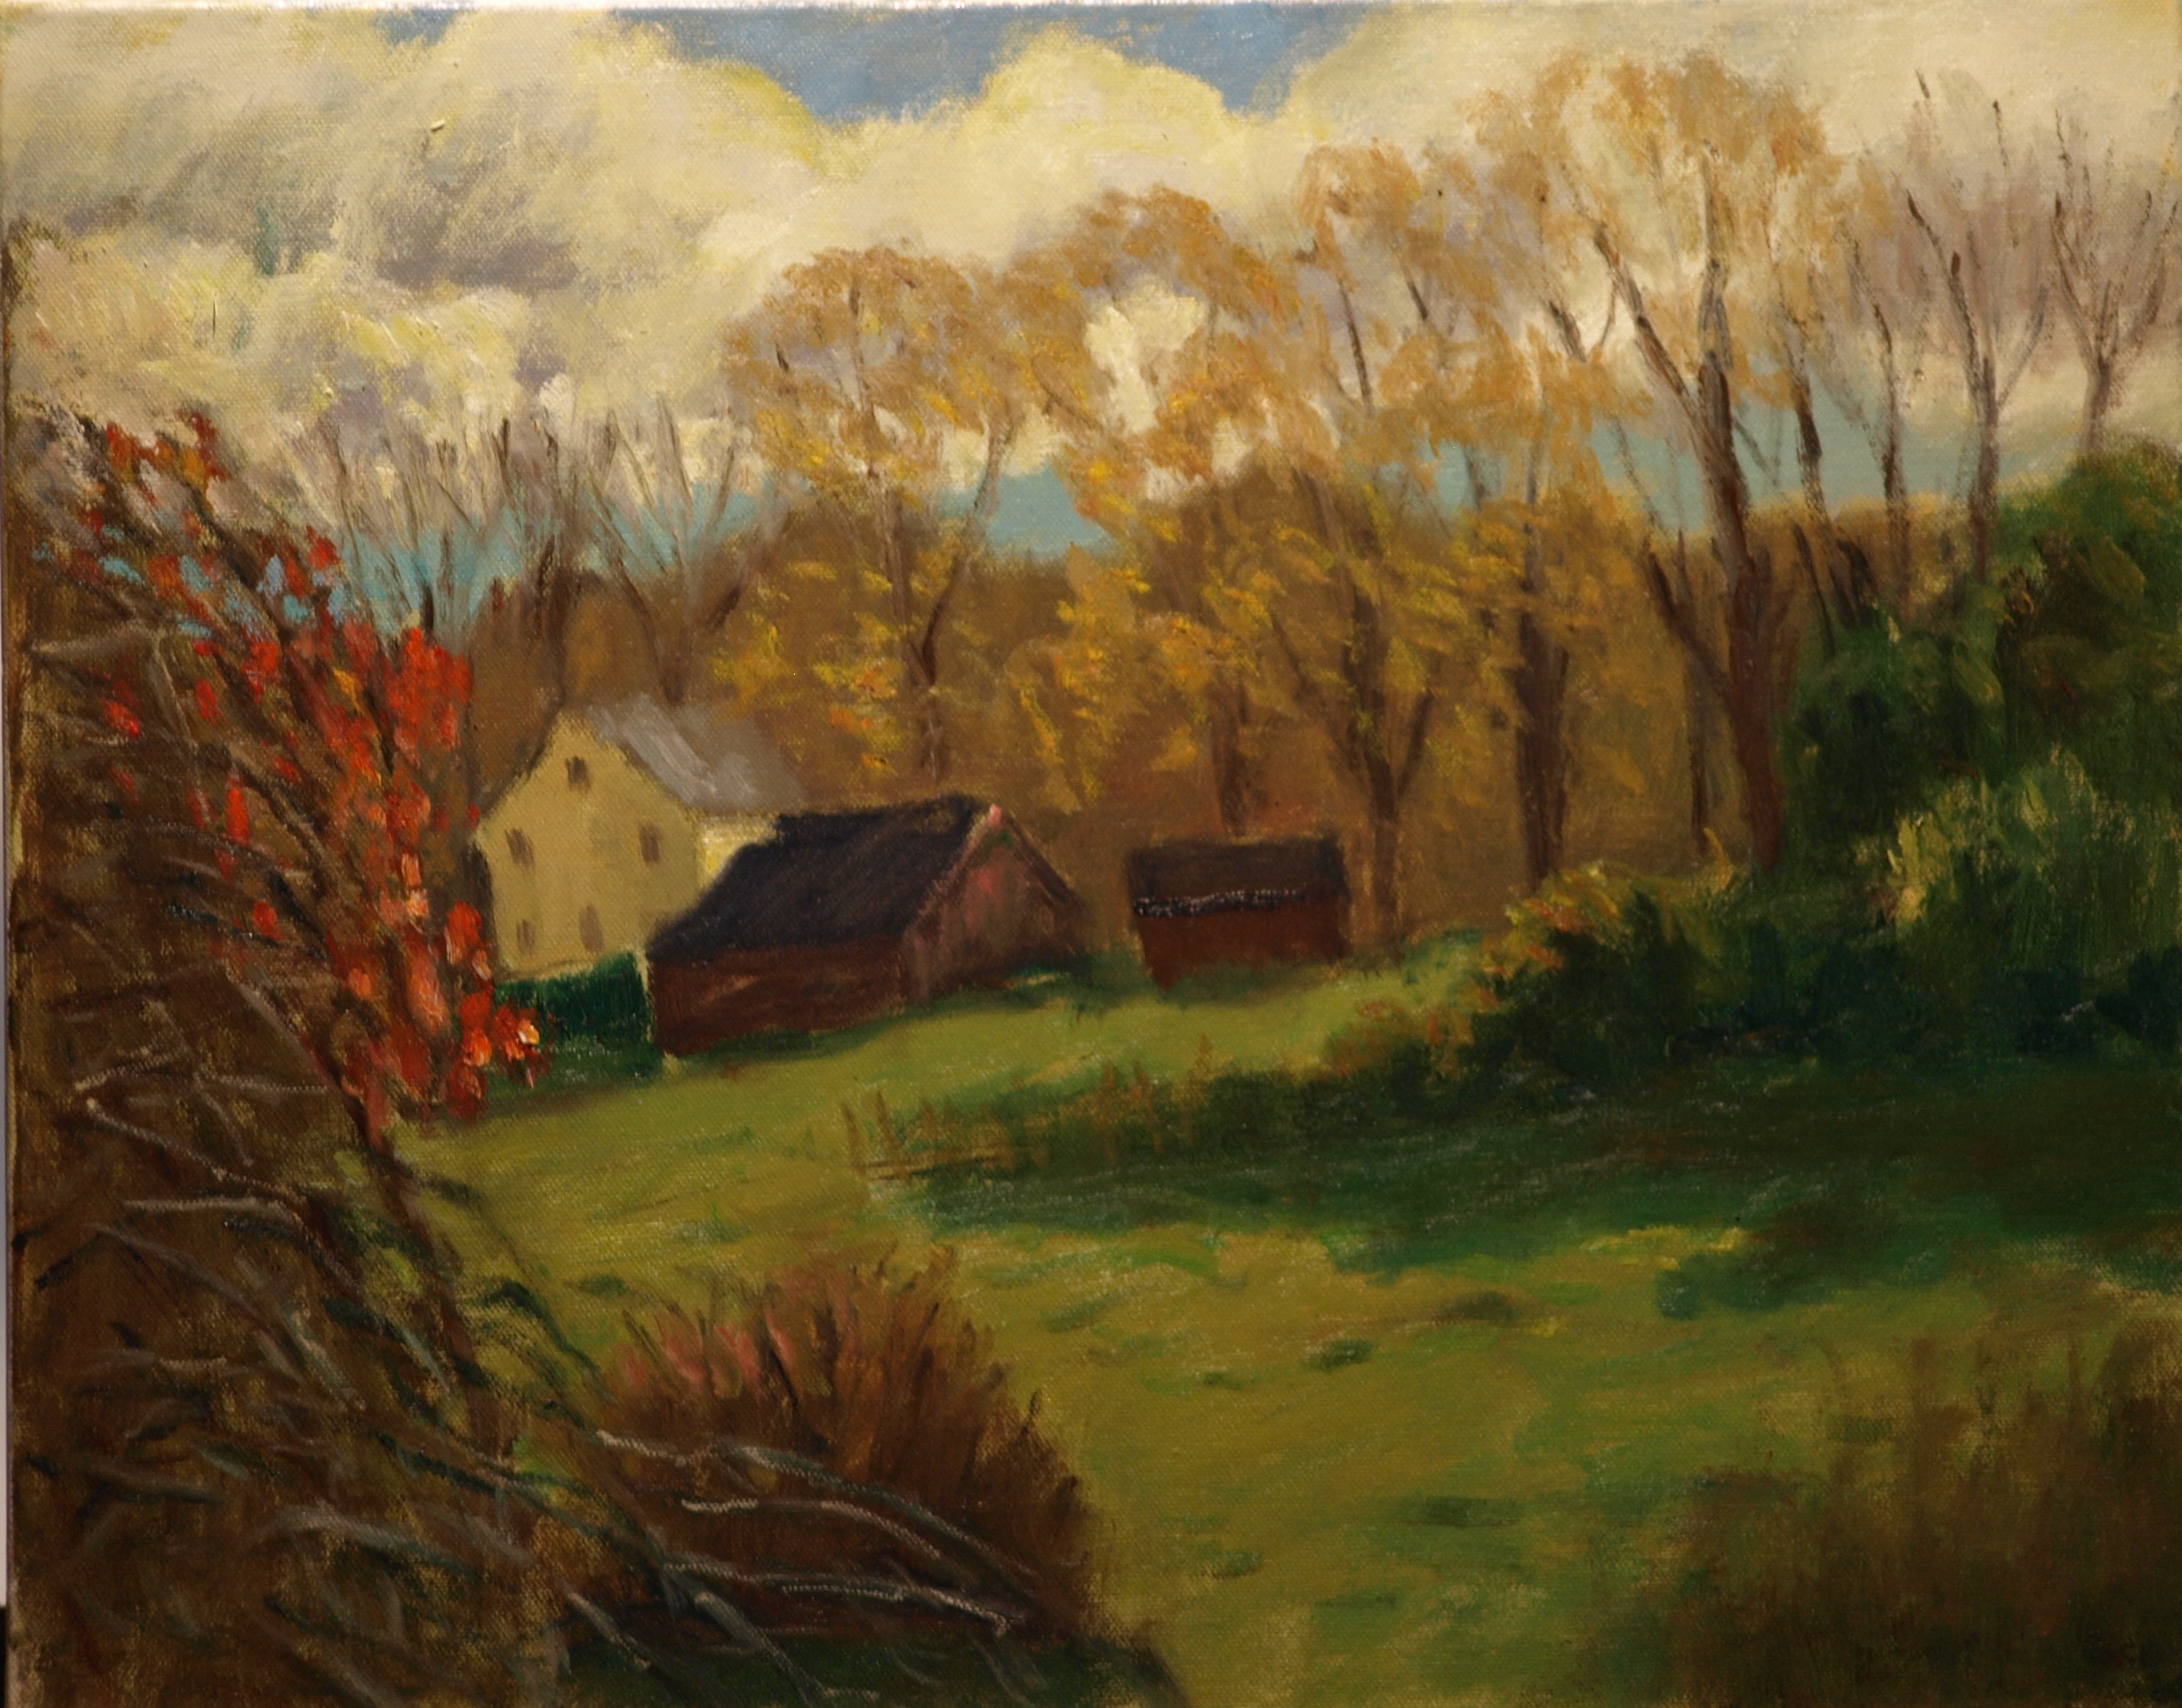 Fall - Edelstein's, Oil on Canvas, 16 x 20 Inches, by Richard Stalter, $650